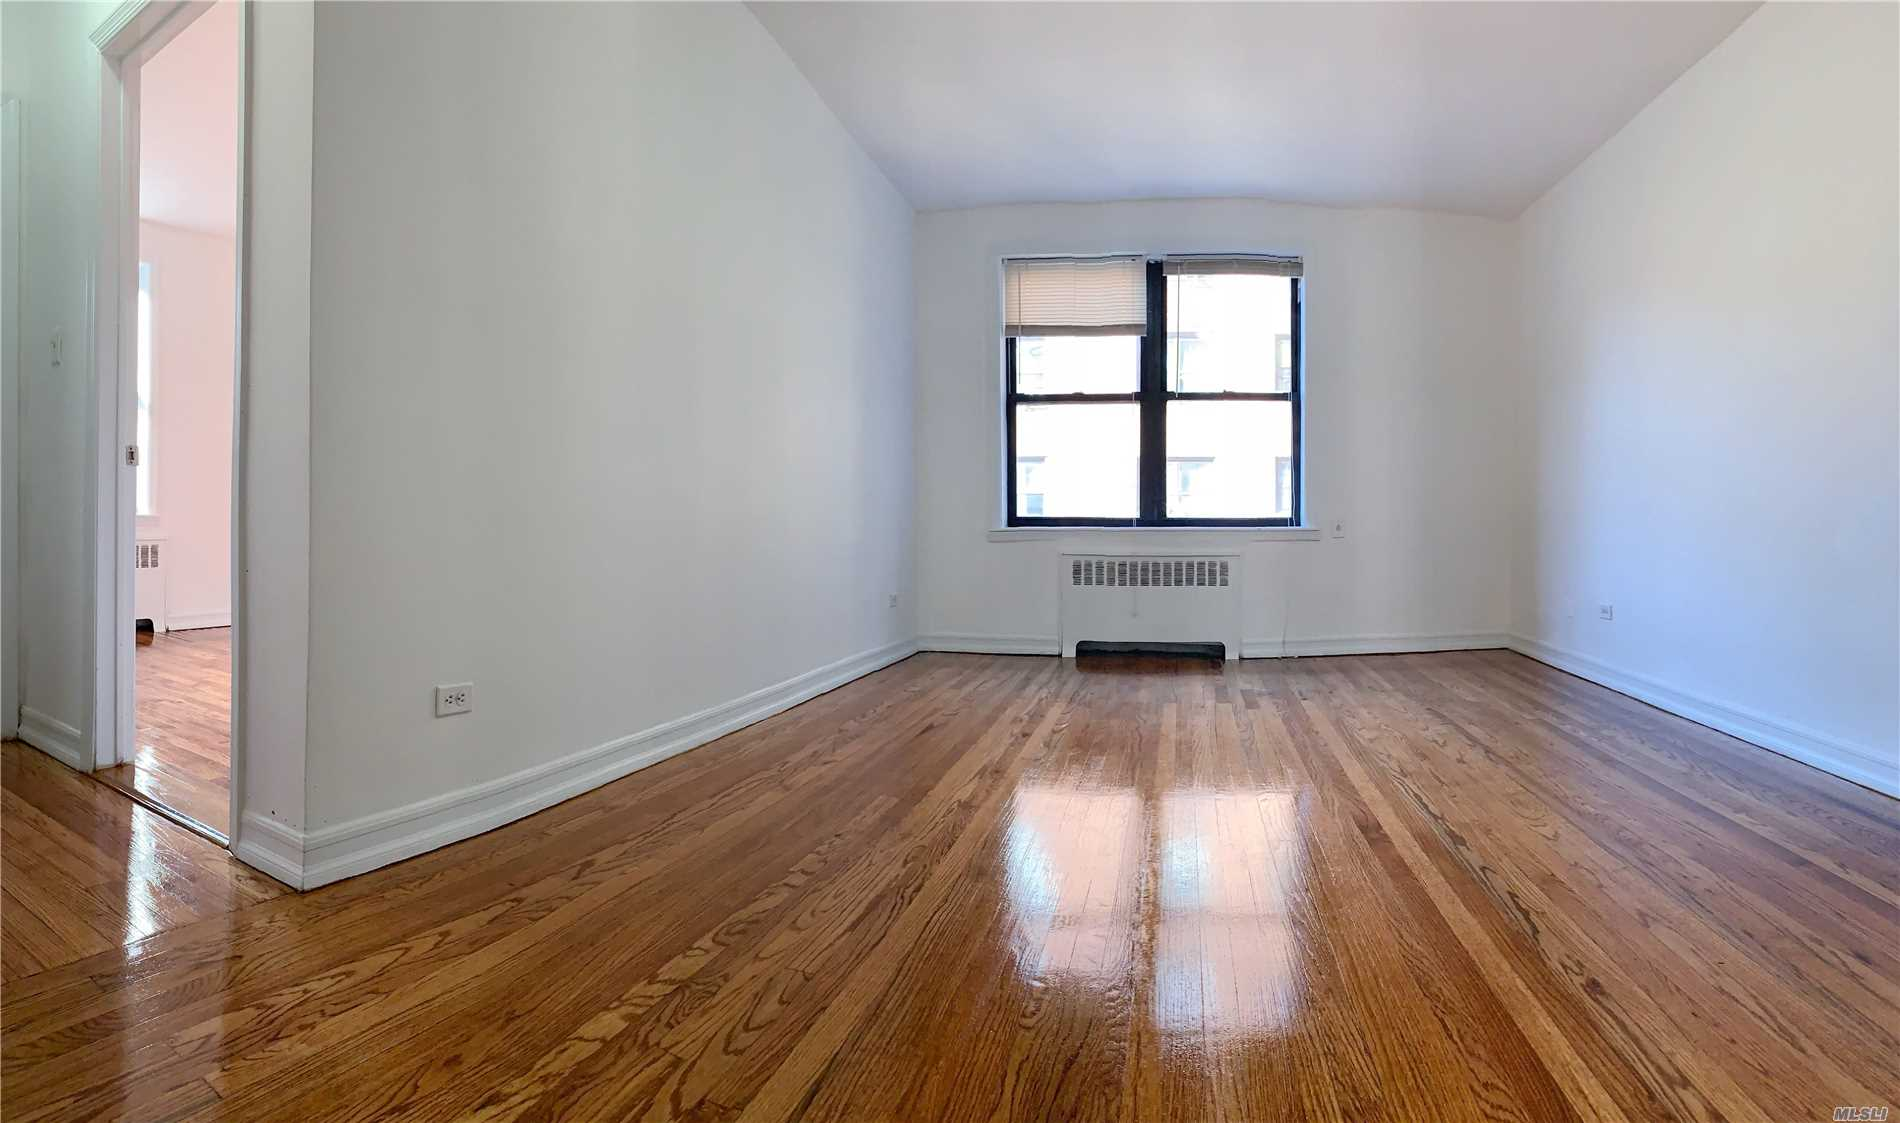 Beautiful, Bright And Updated 1Br/1Ba Co-Op On A Peaceful Block In The Heart Of Elmhurst. Elevator Building With Laundry In The Basement. Large Bedroom With Airy Southwest Exposure. Beautiful Hardwood Floors Throughout. Well Managed Complex With Onsite Super. Close To Dining, Shopping And Much More. M/R Train And Q53 Bus Just One Block Away. 20 Minutes To Manhattan.